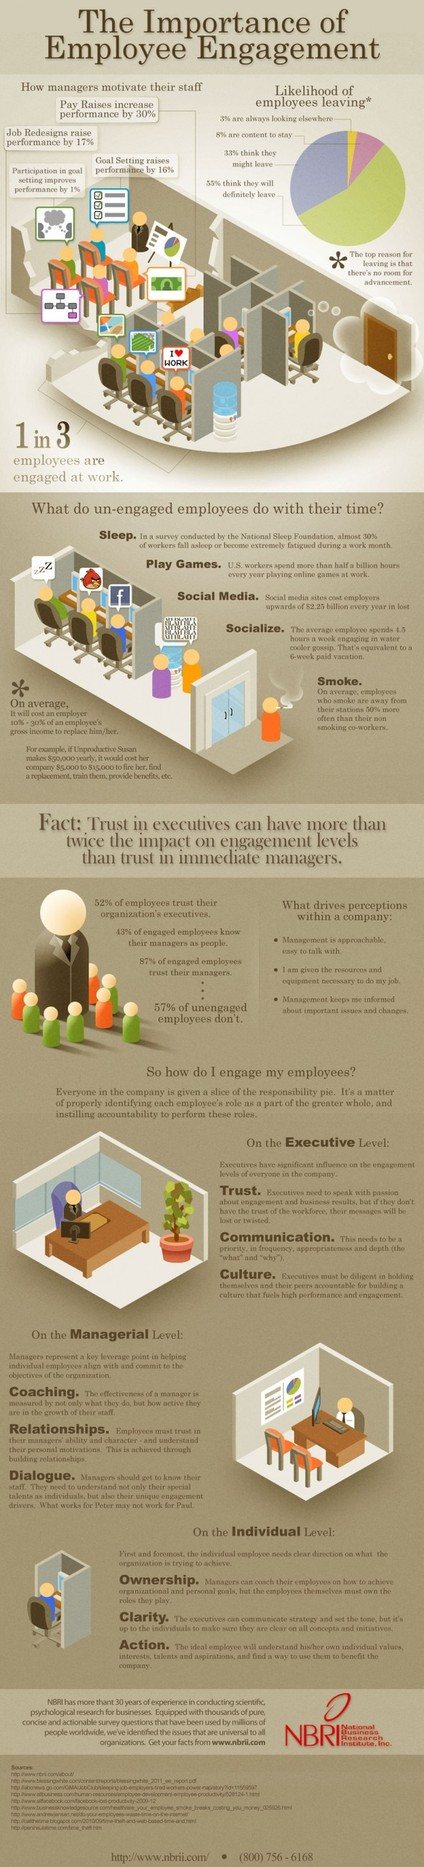 The Importance of Employee Engagement | Visual.ly | F.E. Moran